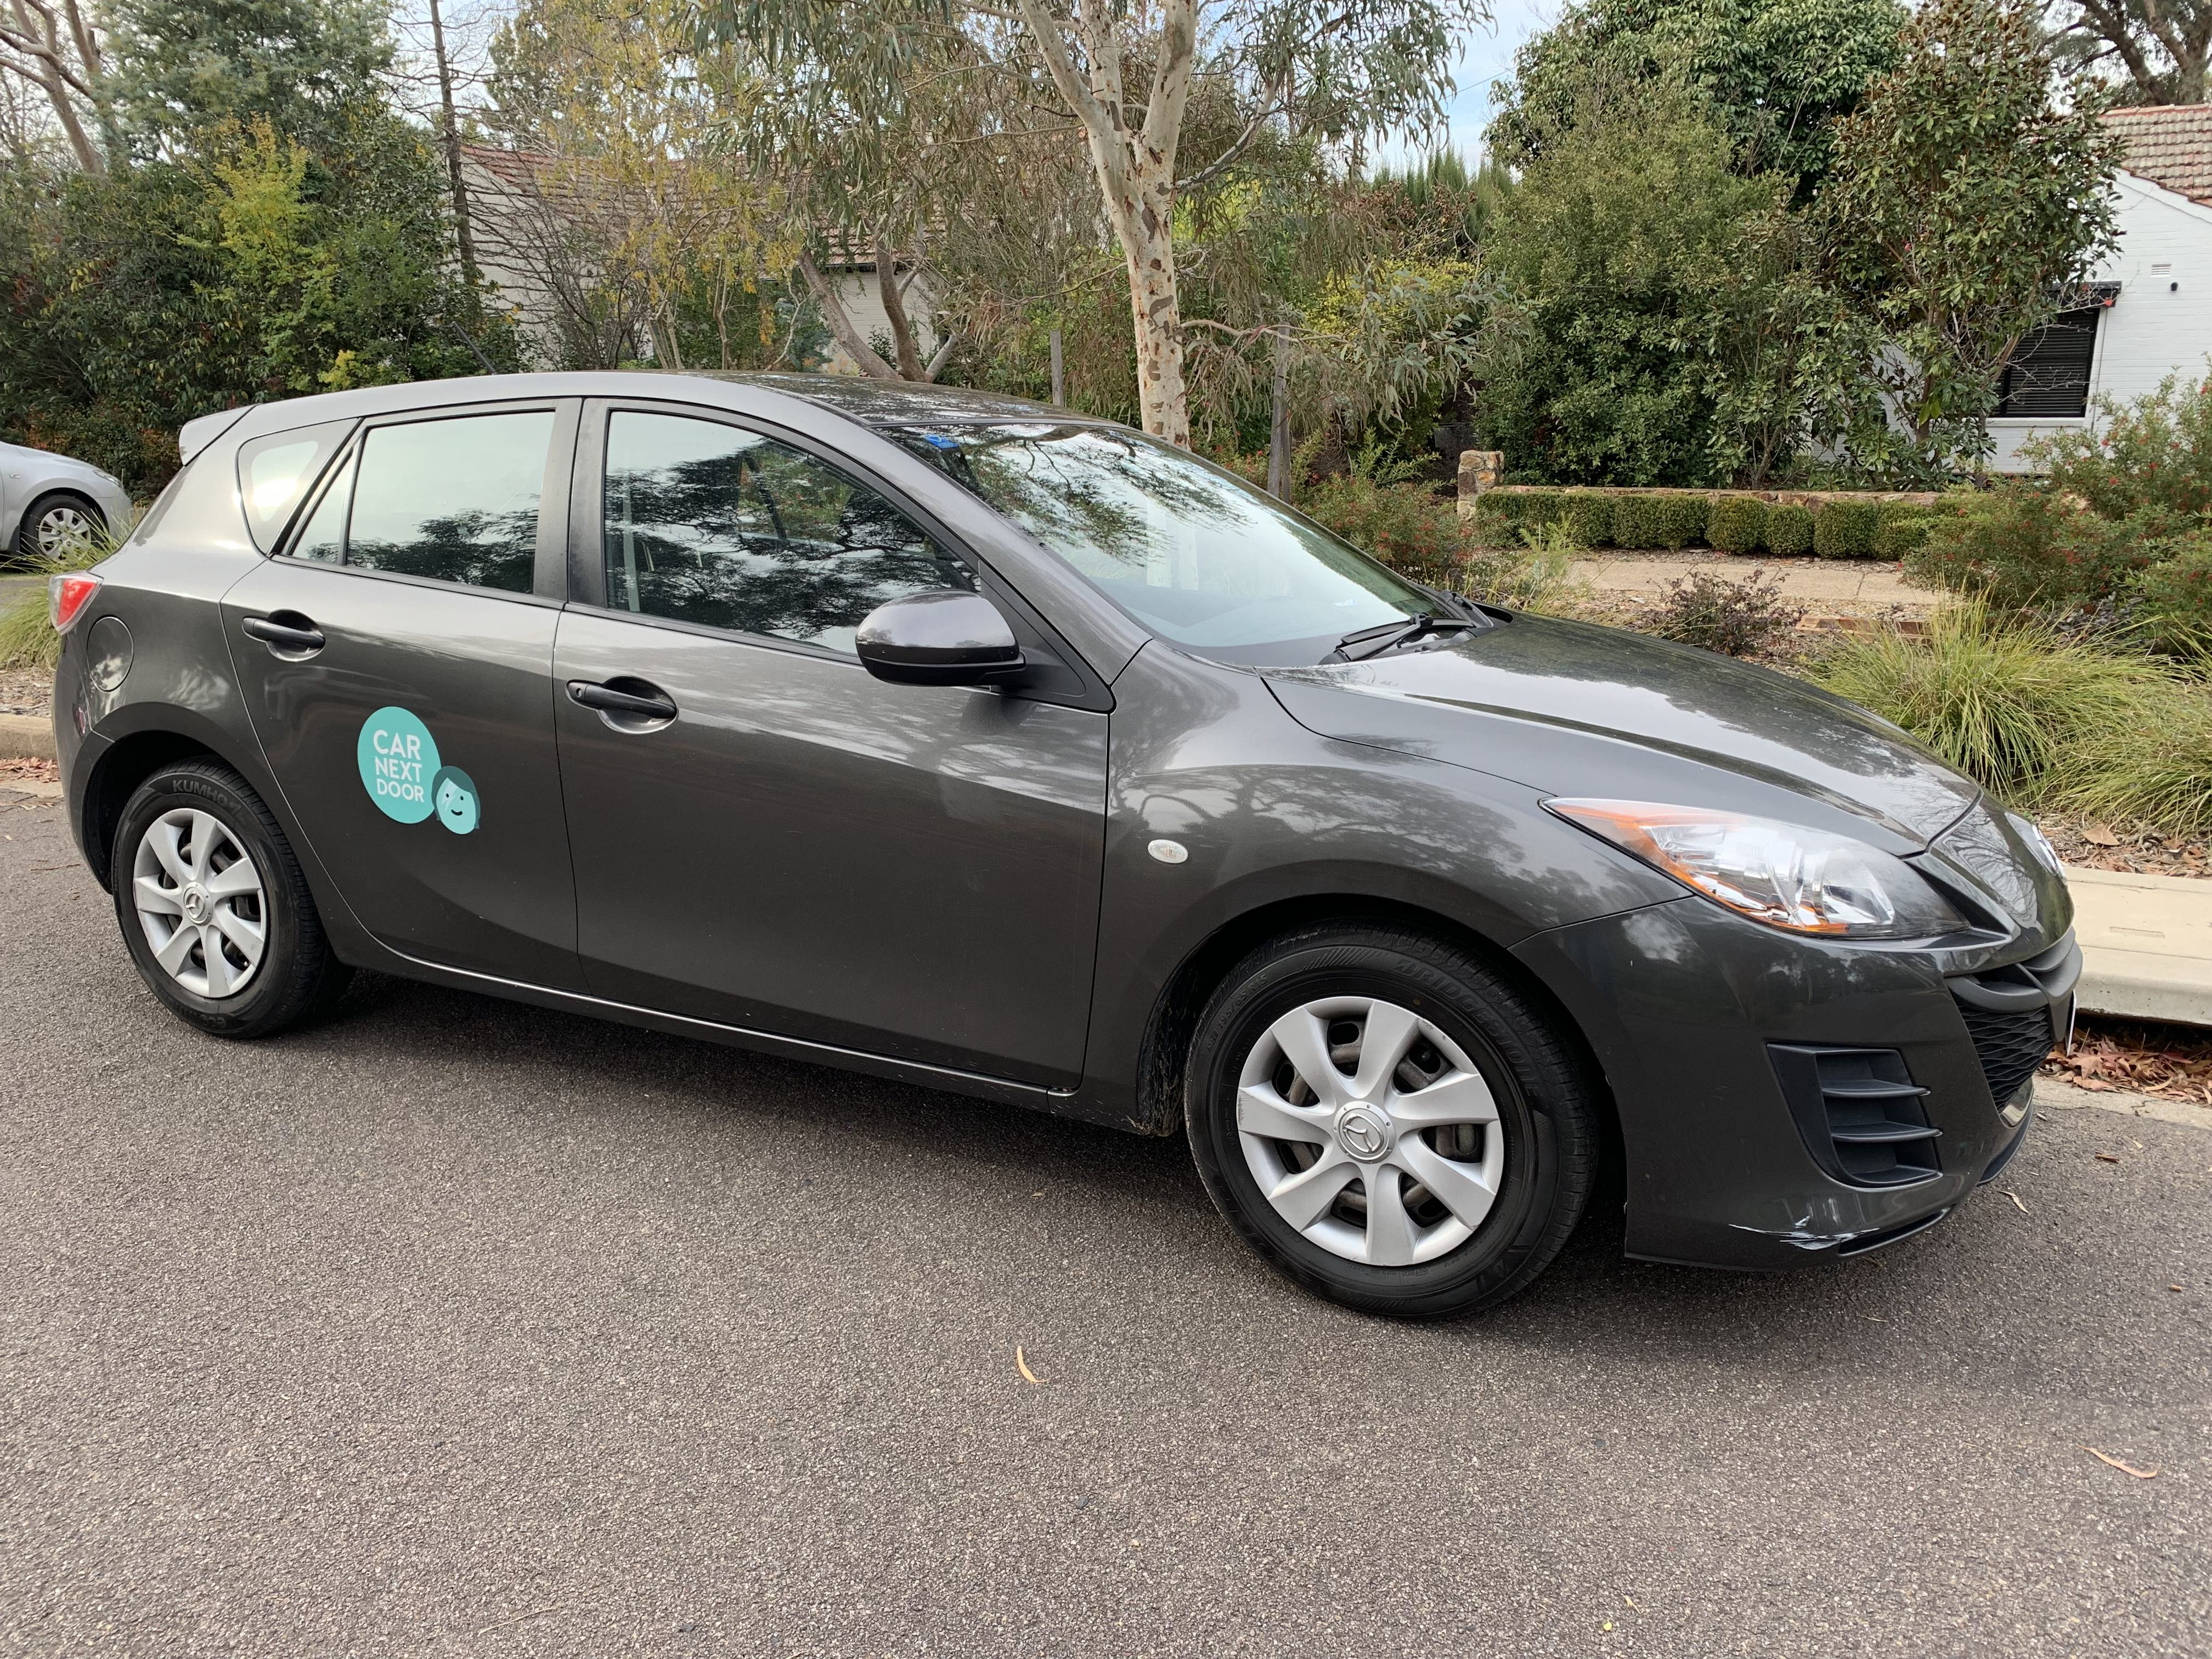 Picture of Rachael's 2011 Mazda 3